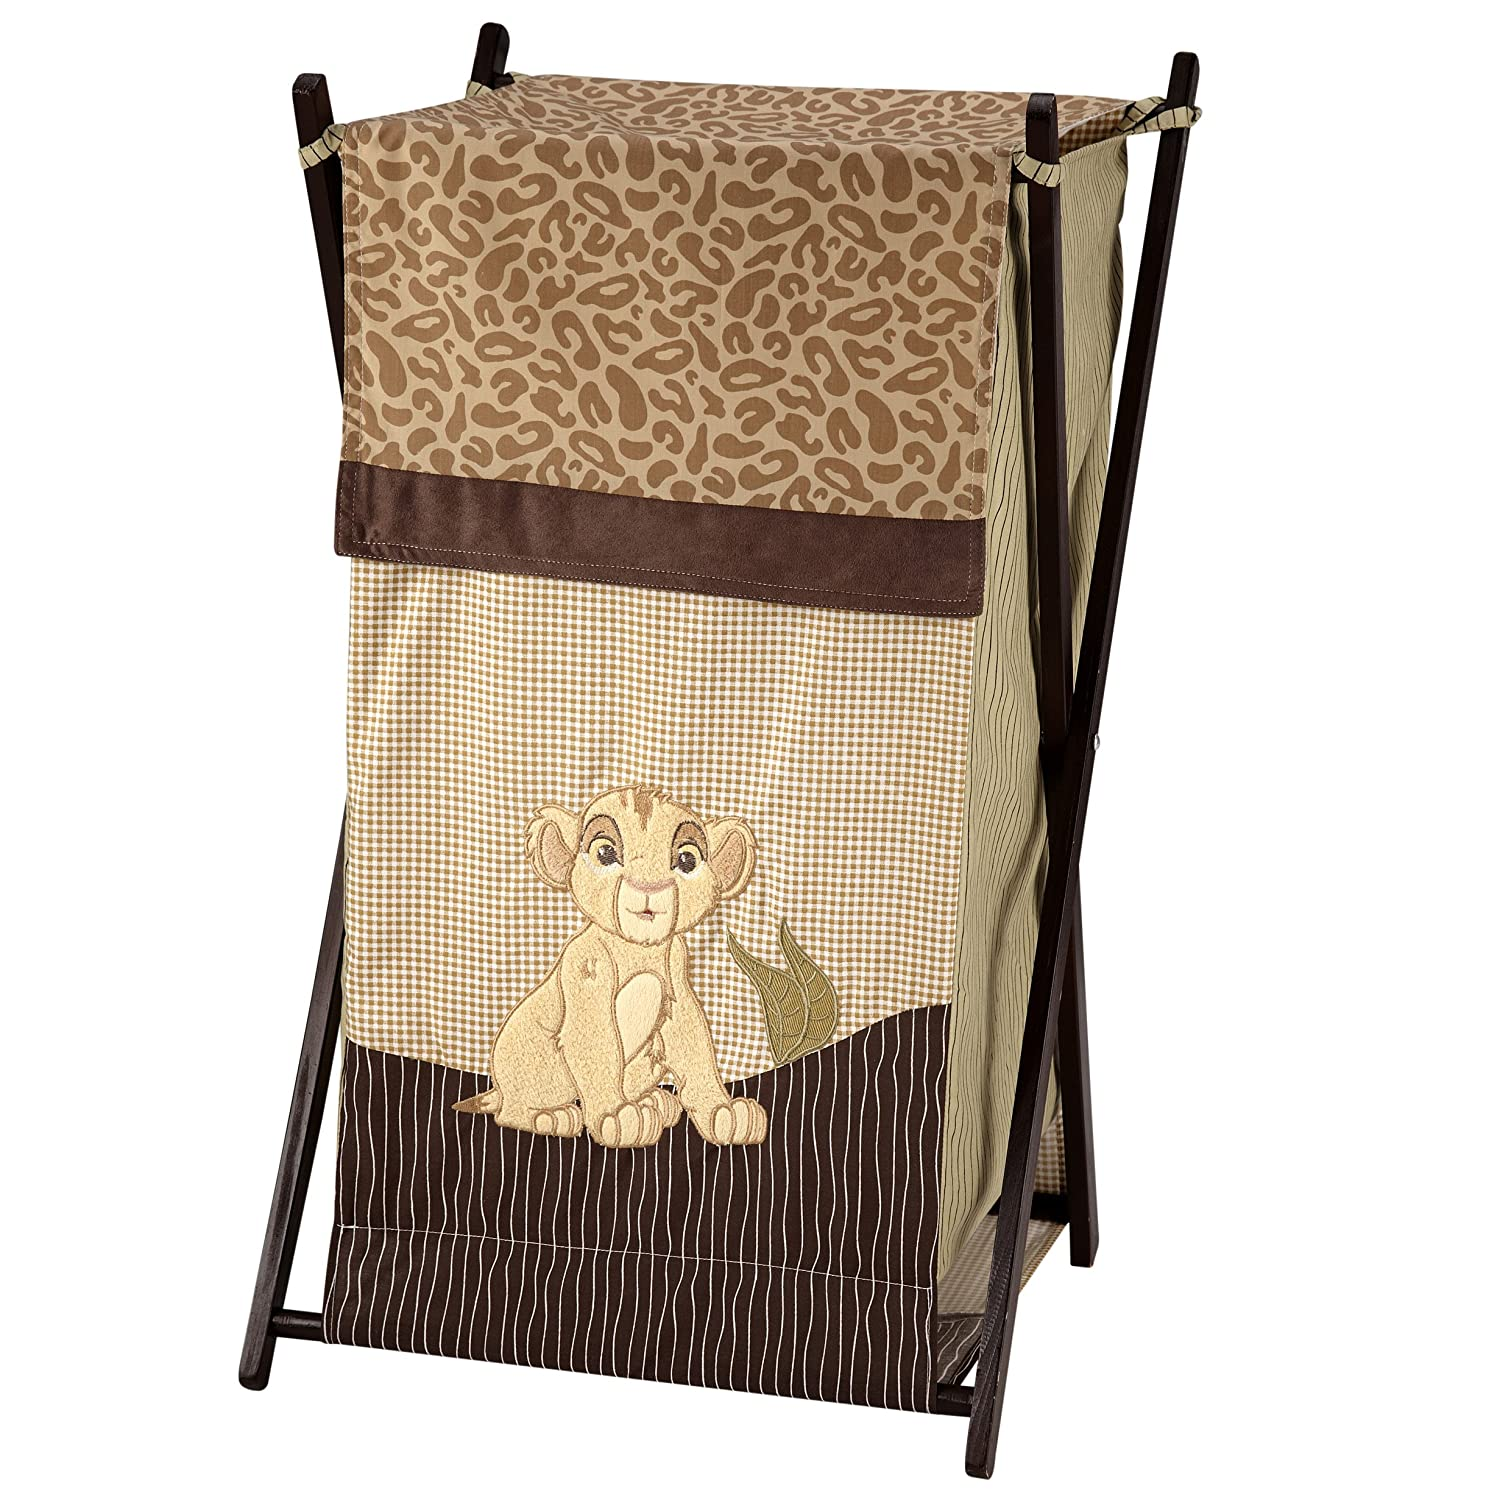 Disney Lion King Simba's Wild Adventure Appliqued Folding Hamper with Mesh Bag, Brown, Orange, Sage, Ivory Crown Crafts Inc 6804028